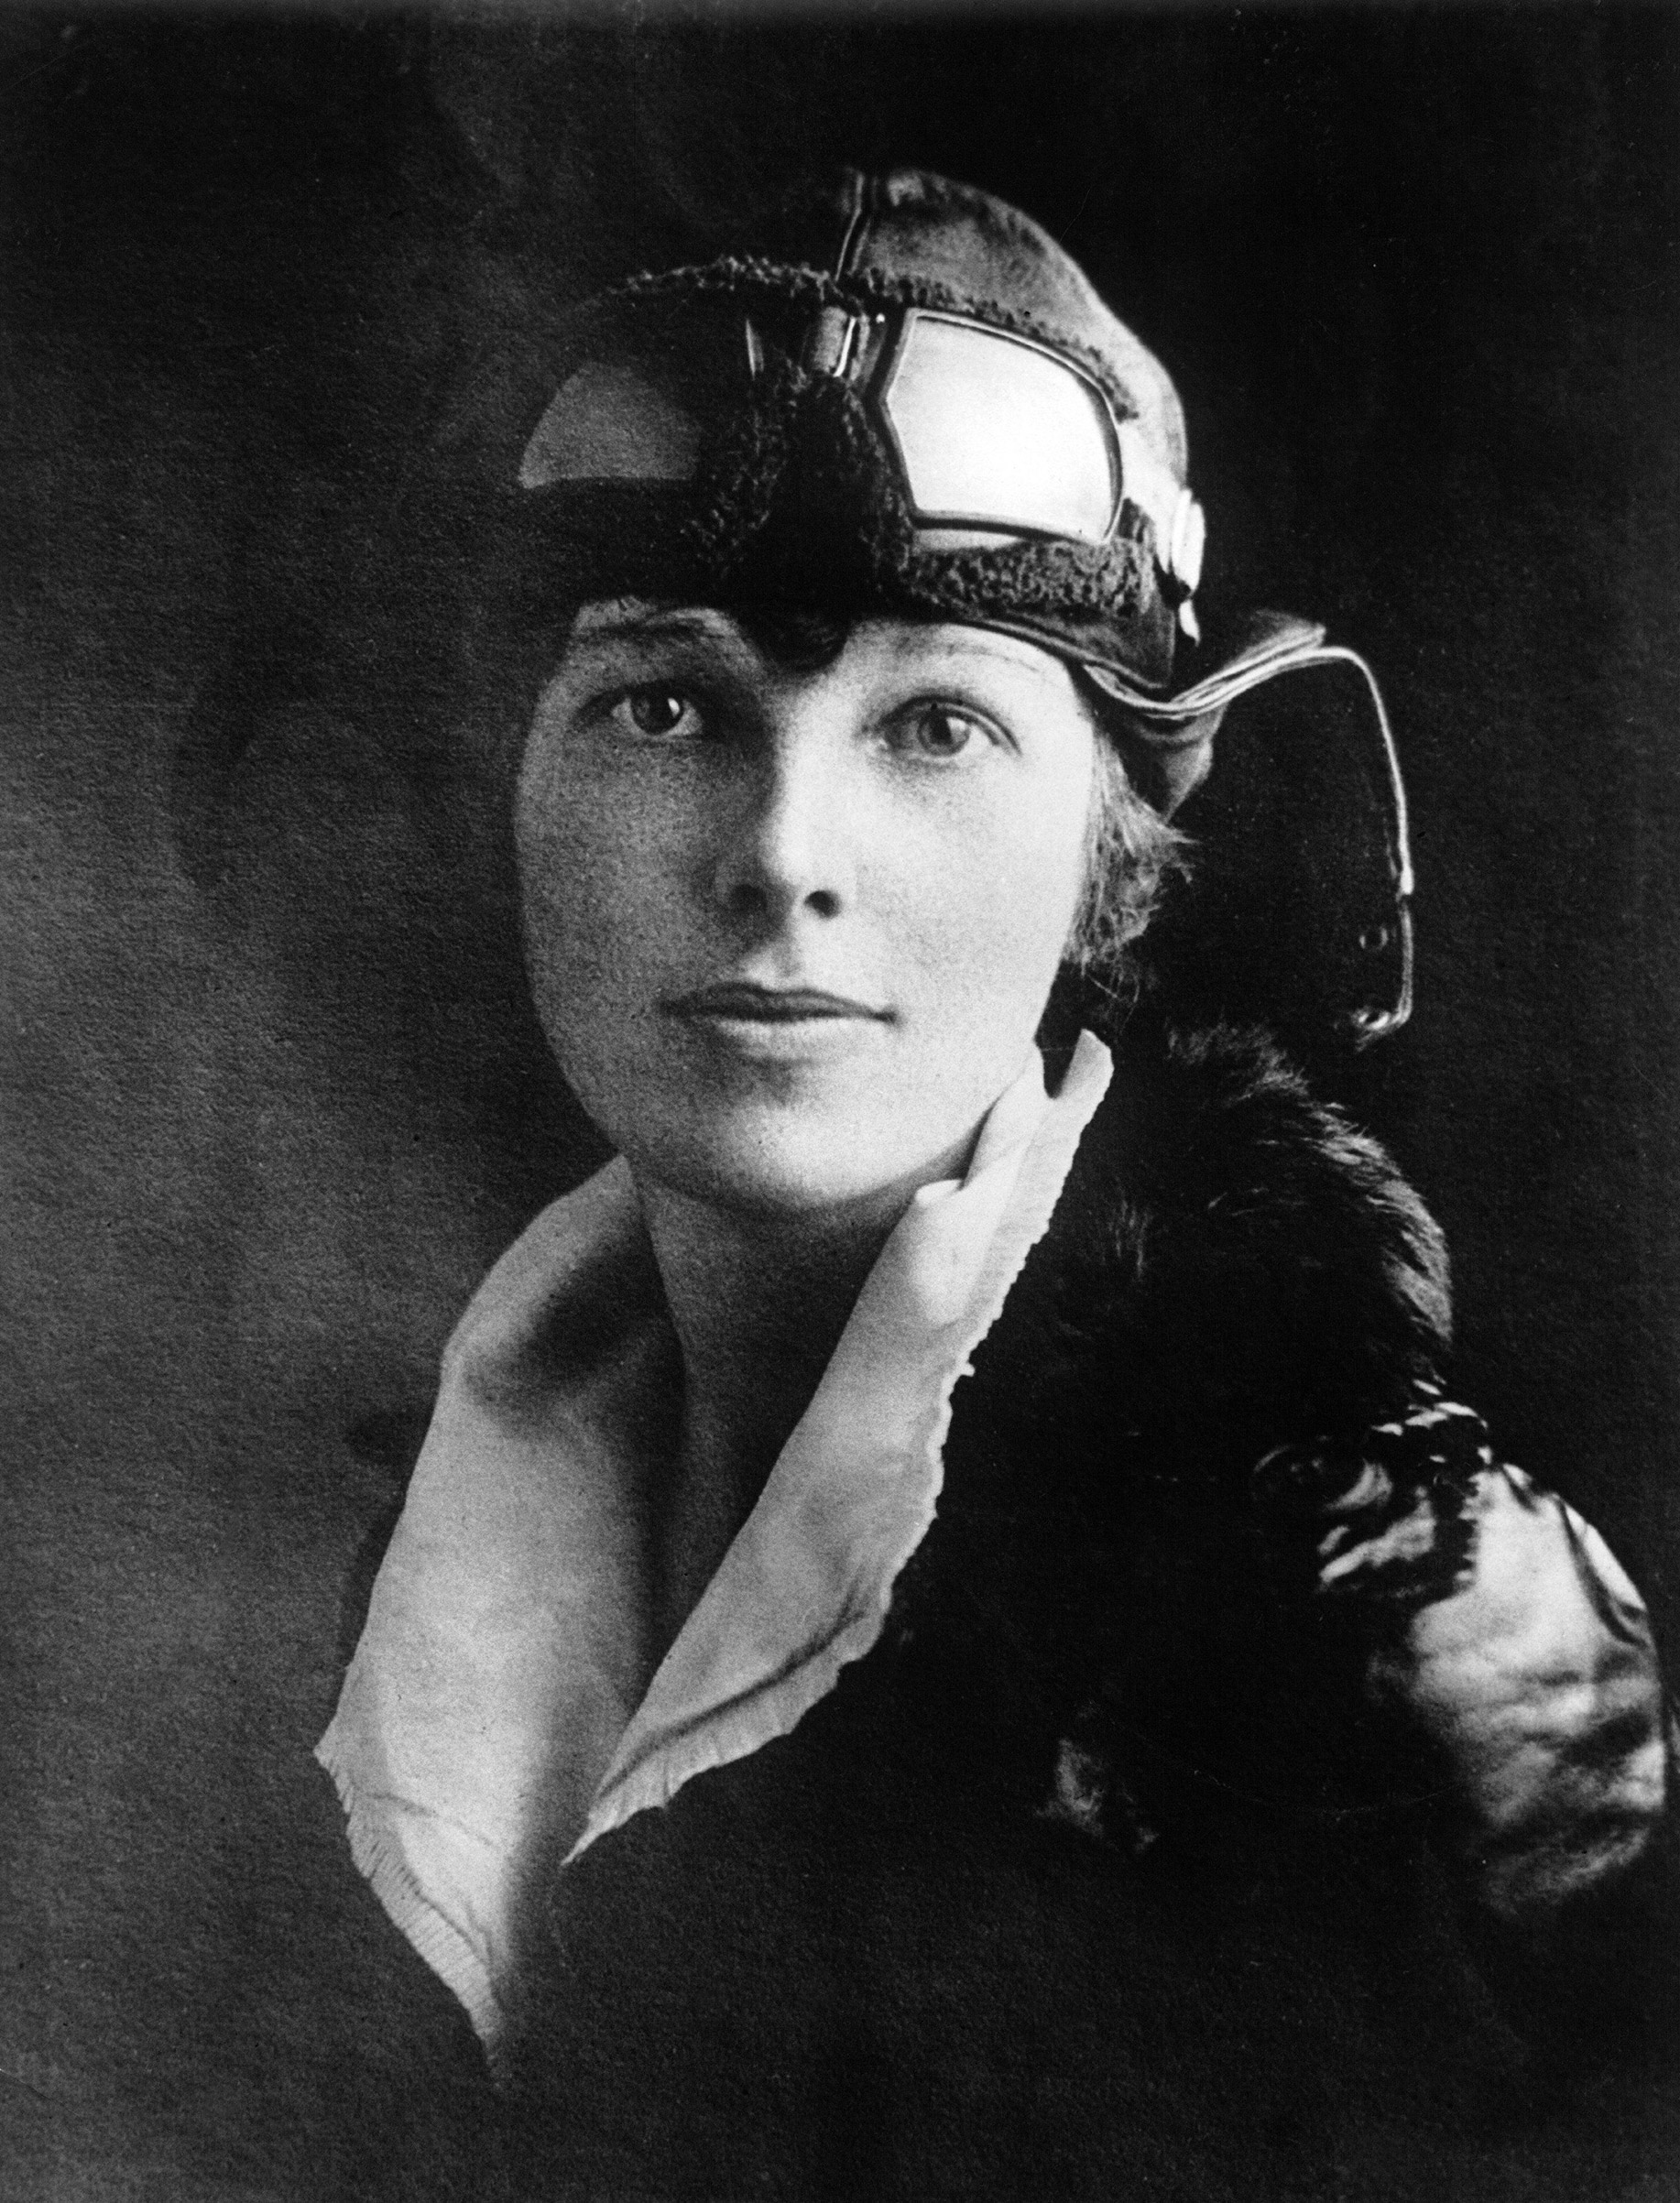 AMELIA EARHART became the first woman to pilot, solo, a nonstop flight across the Atlantic Ocean in 1932.